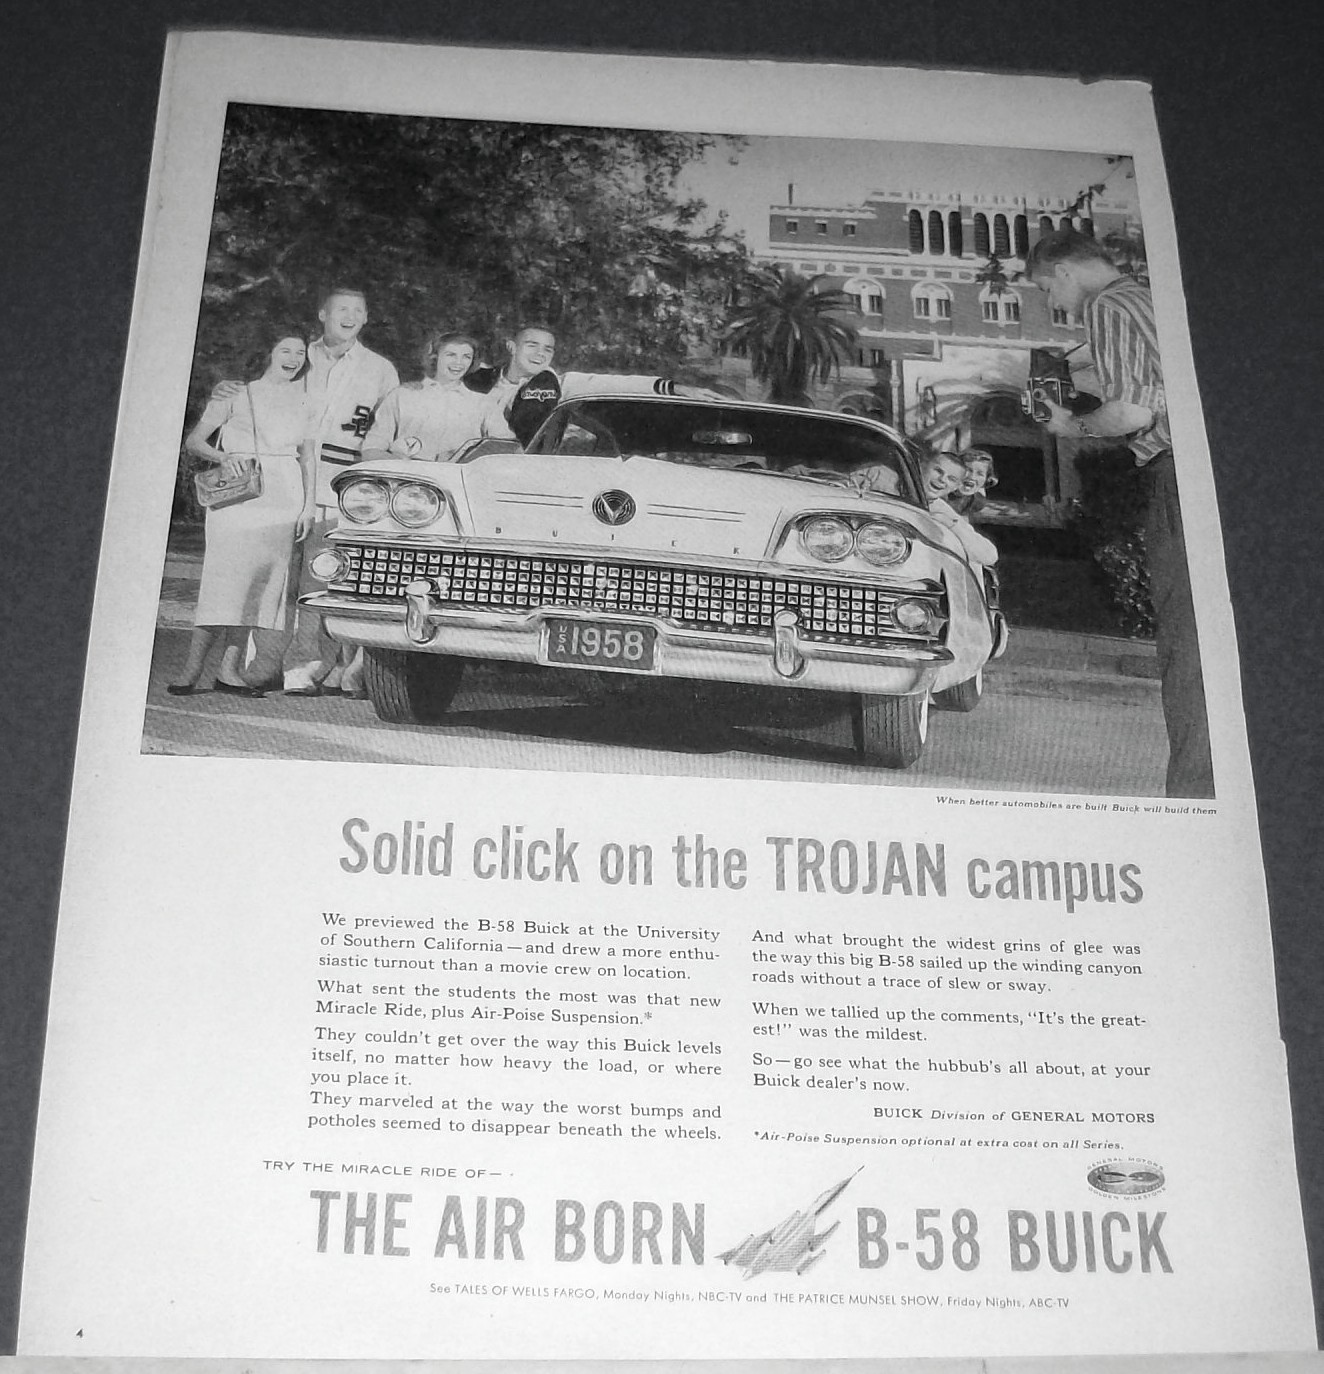 1958 Buick B-58 Trojan Campus Univ So California Ad. Perfect for framing!